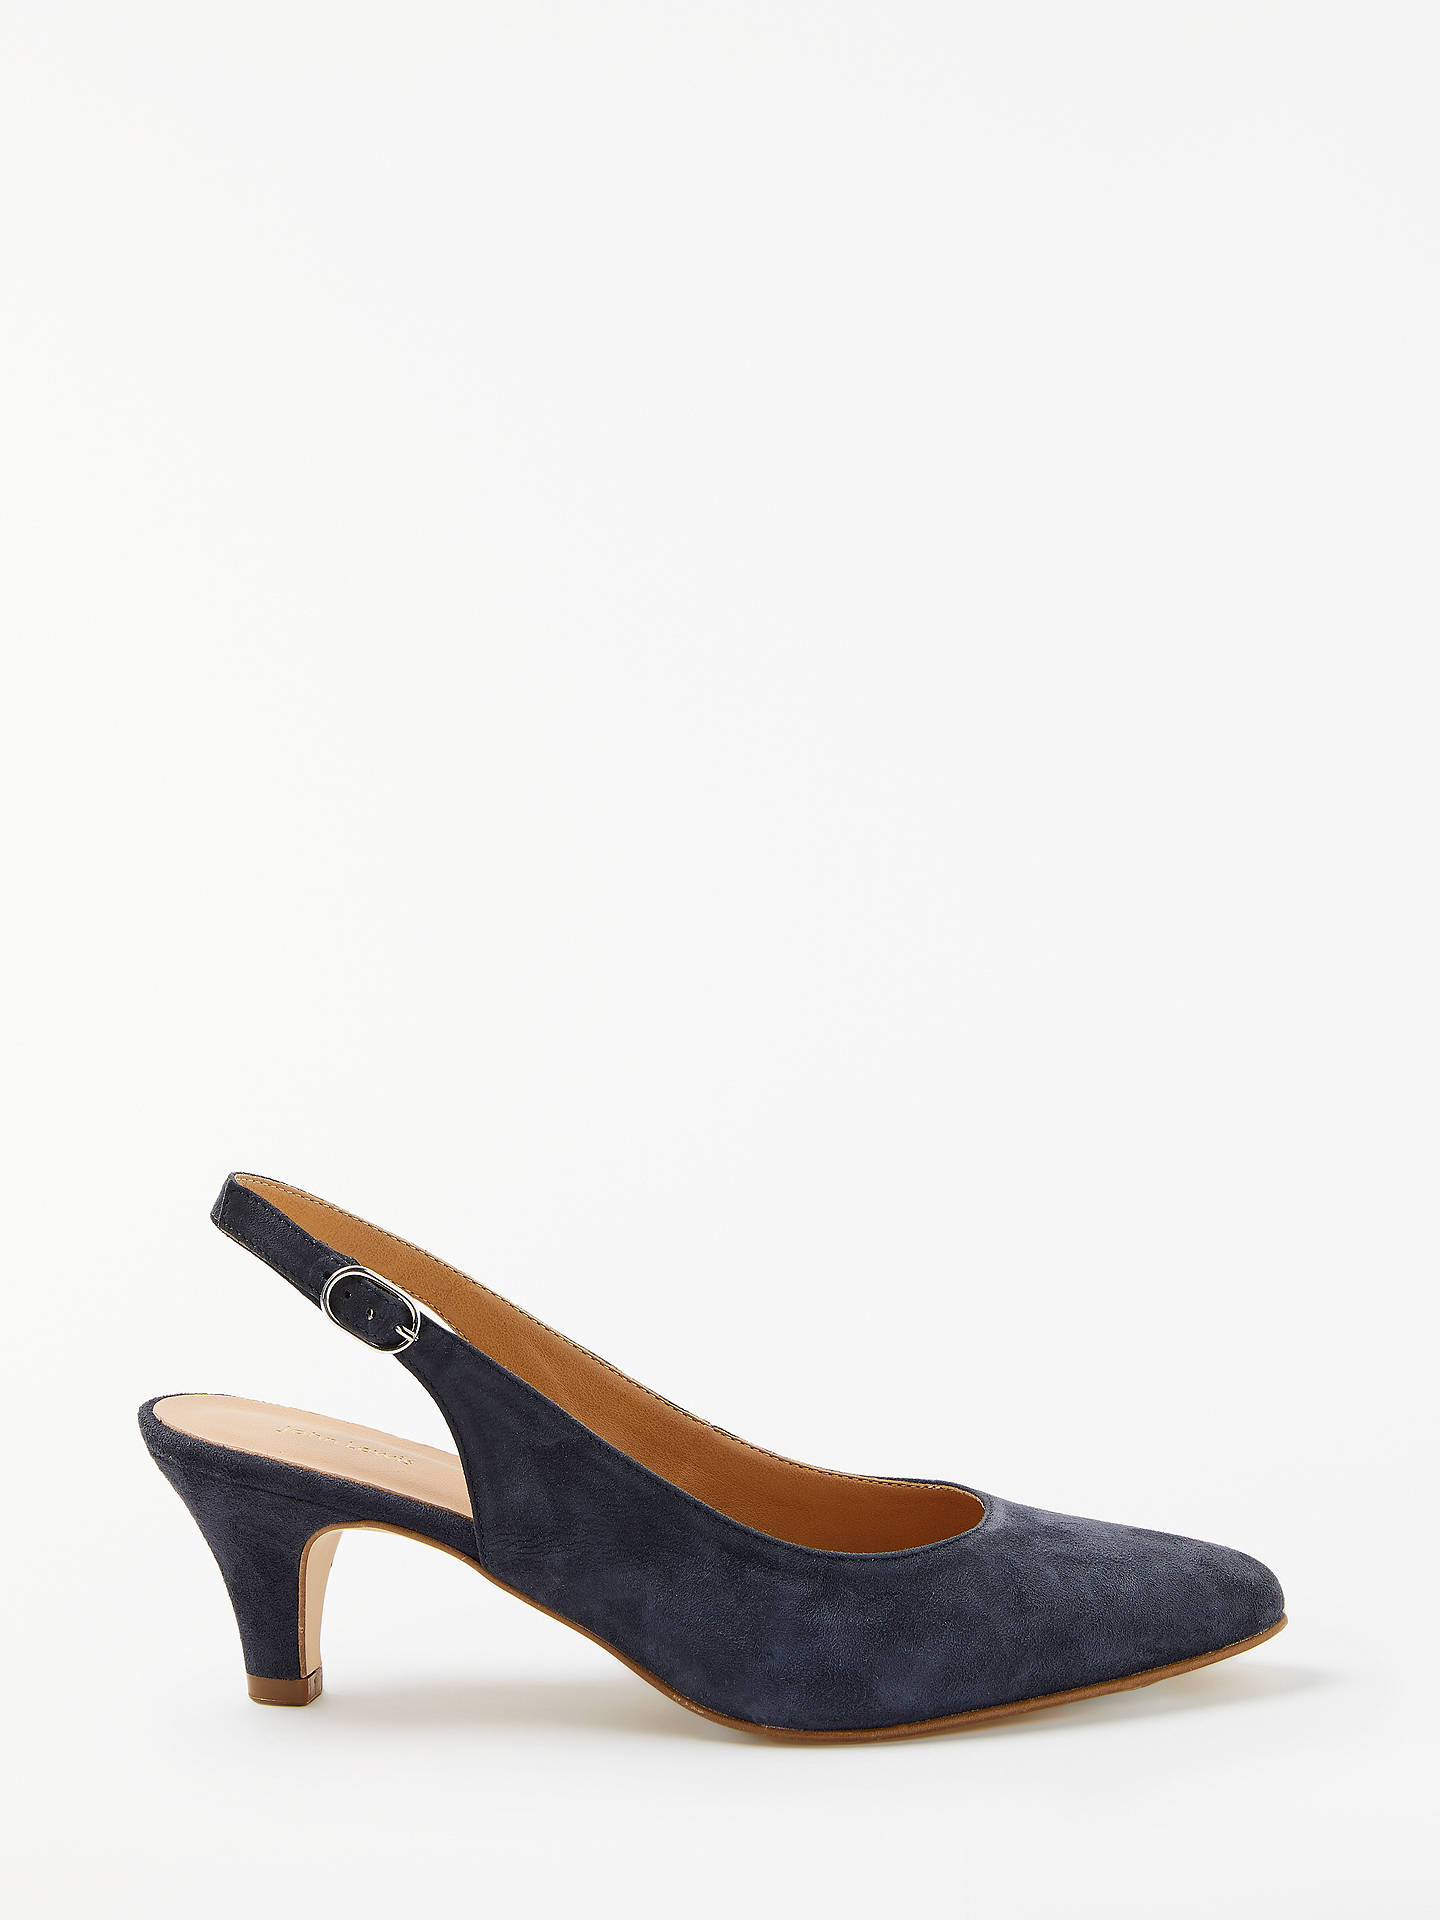 BuyJohn Lewis & Partners Grace Kitten Heel Court Shoes, Navy Suede, 5 Online at johnlewis.com